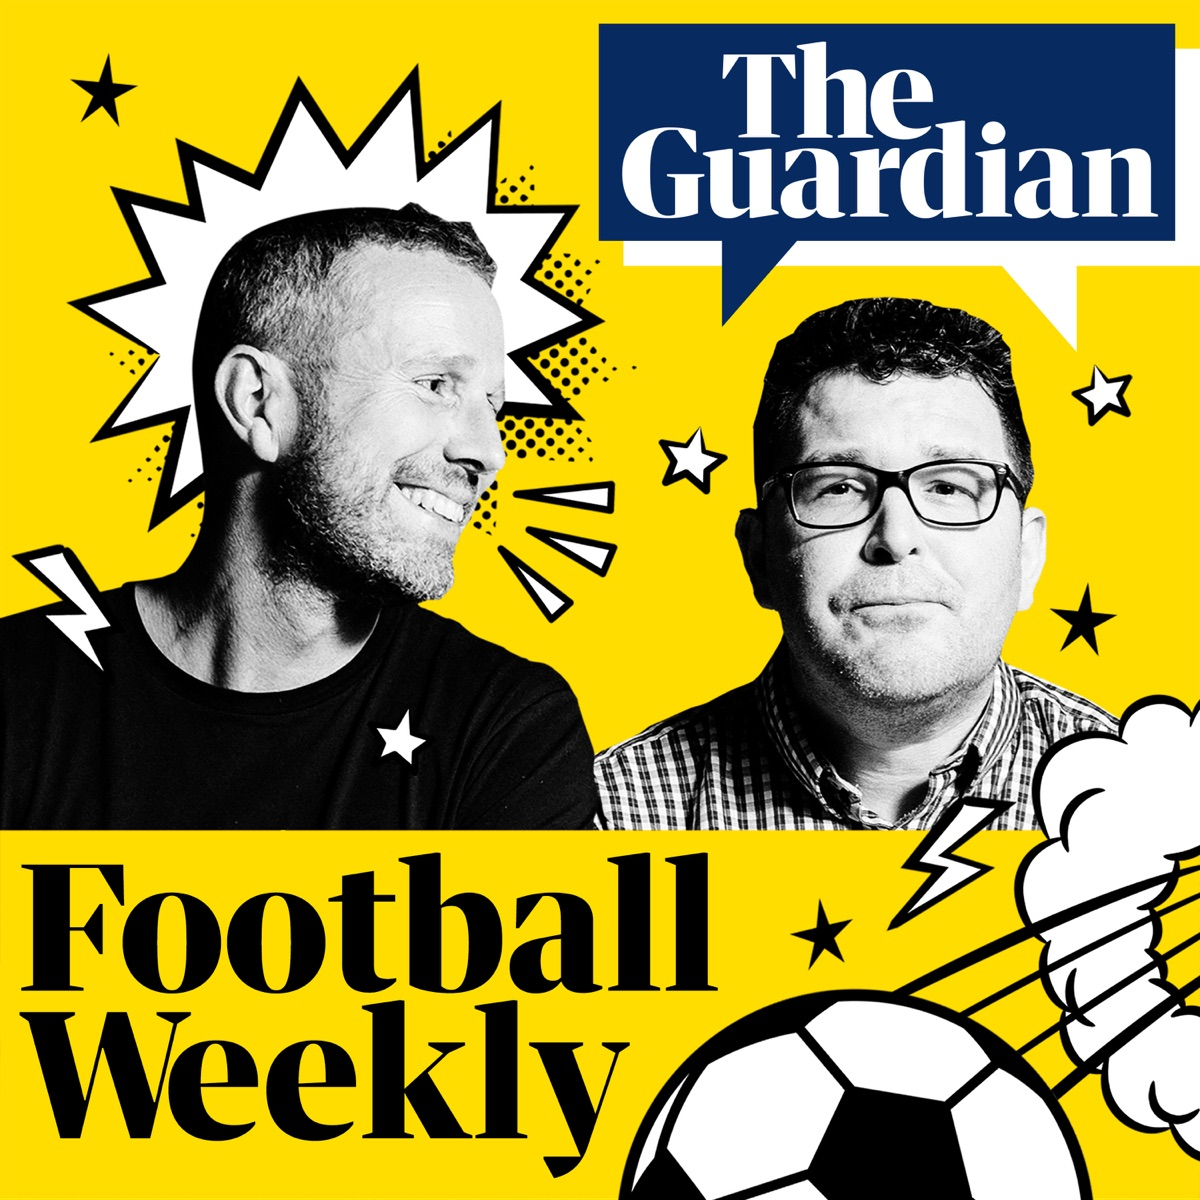 The Premier League is back – Football Weekly